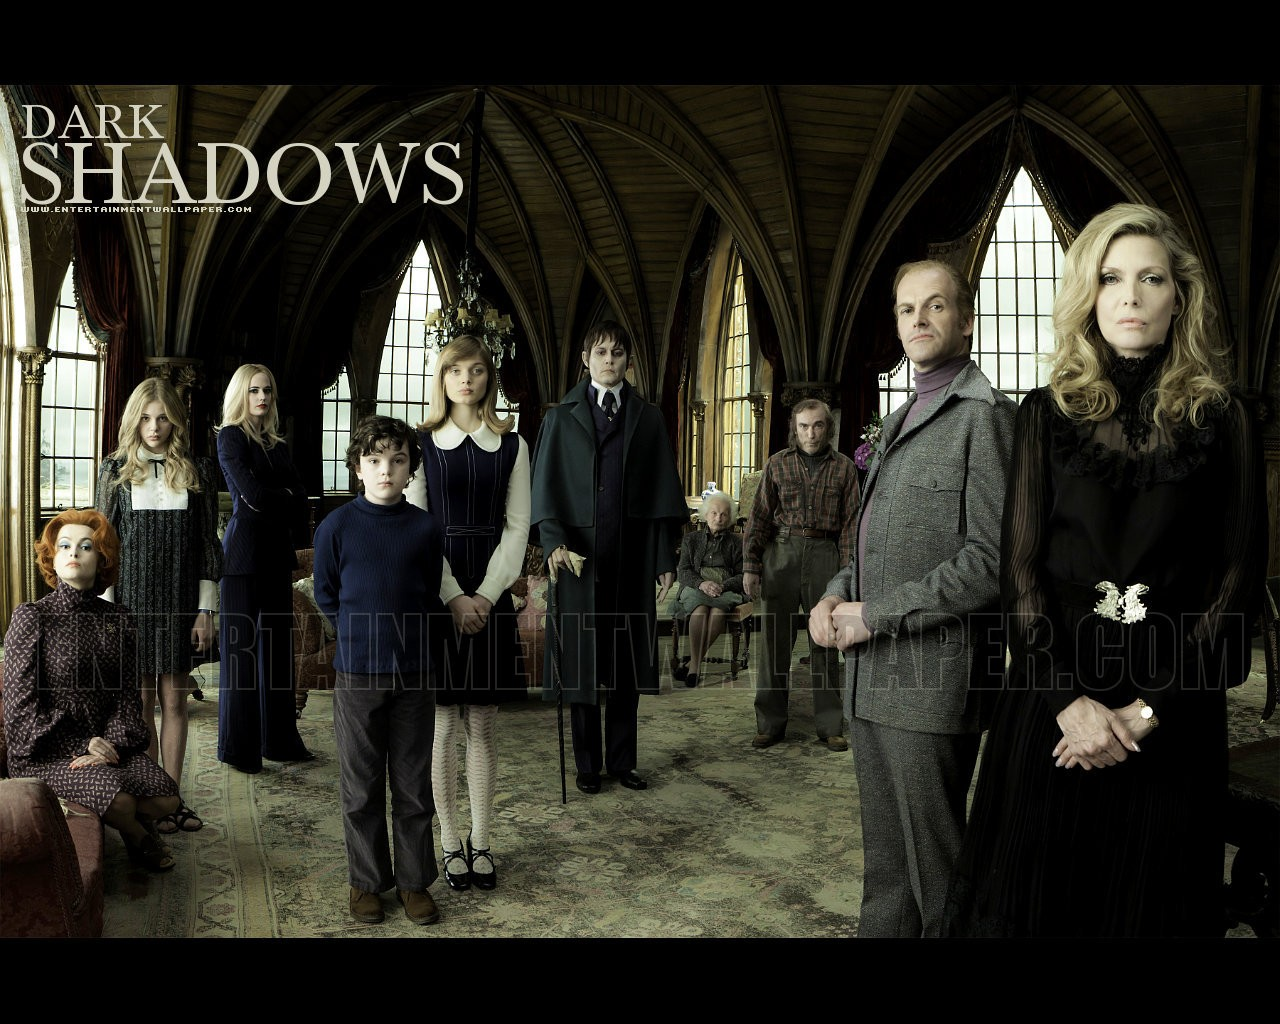 tv show dark shadows wallpaper 10030473 size 1280x1024 more dark 1280x1024